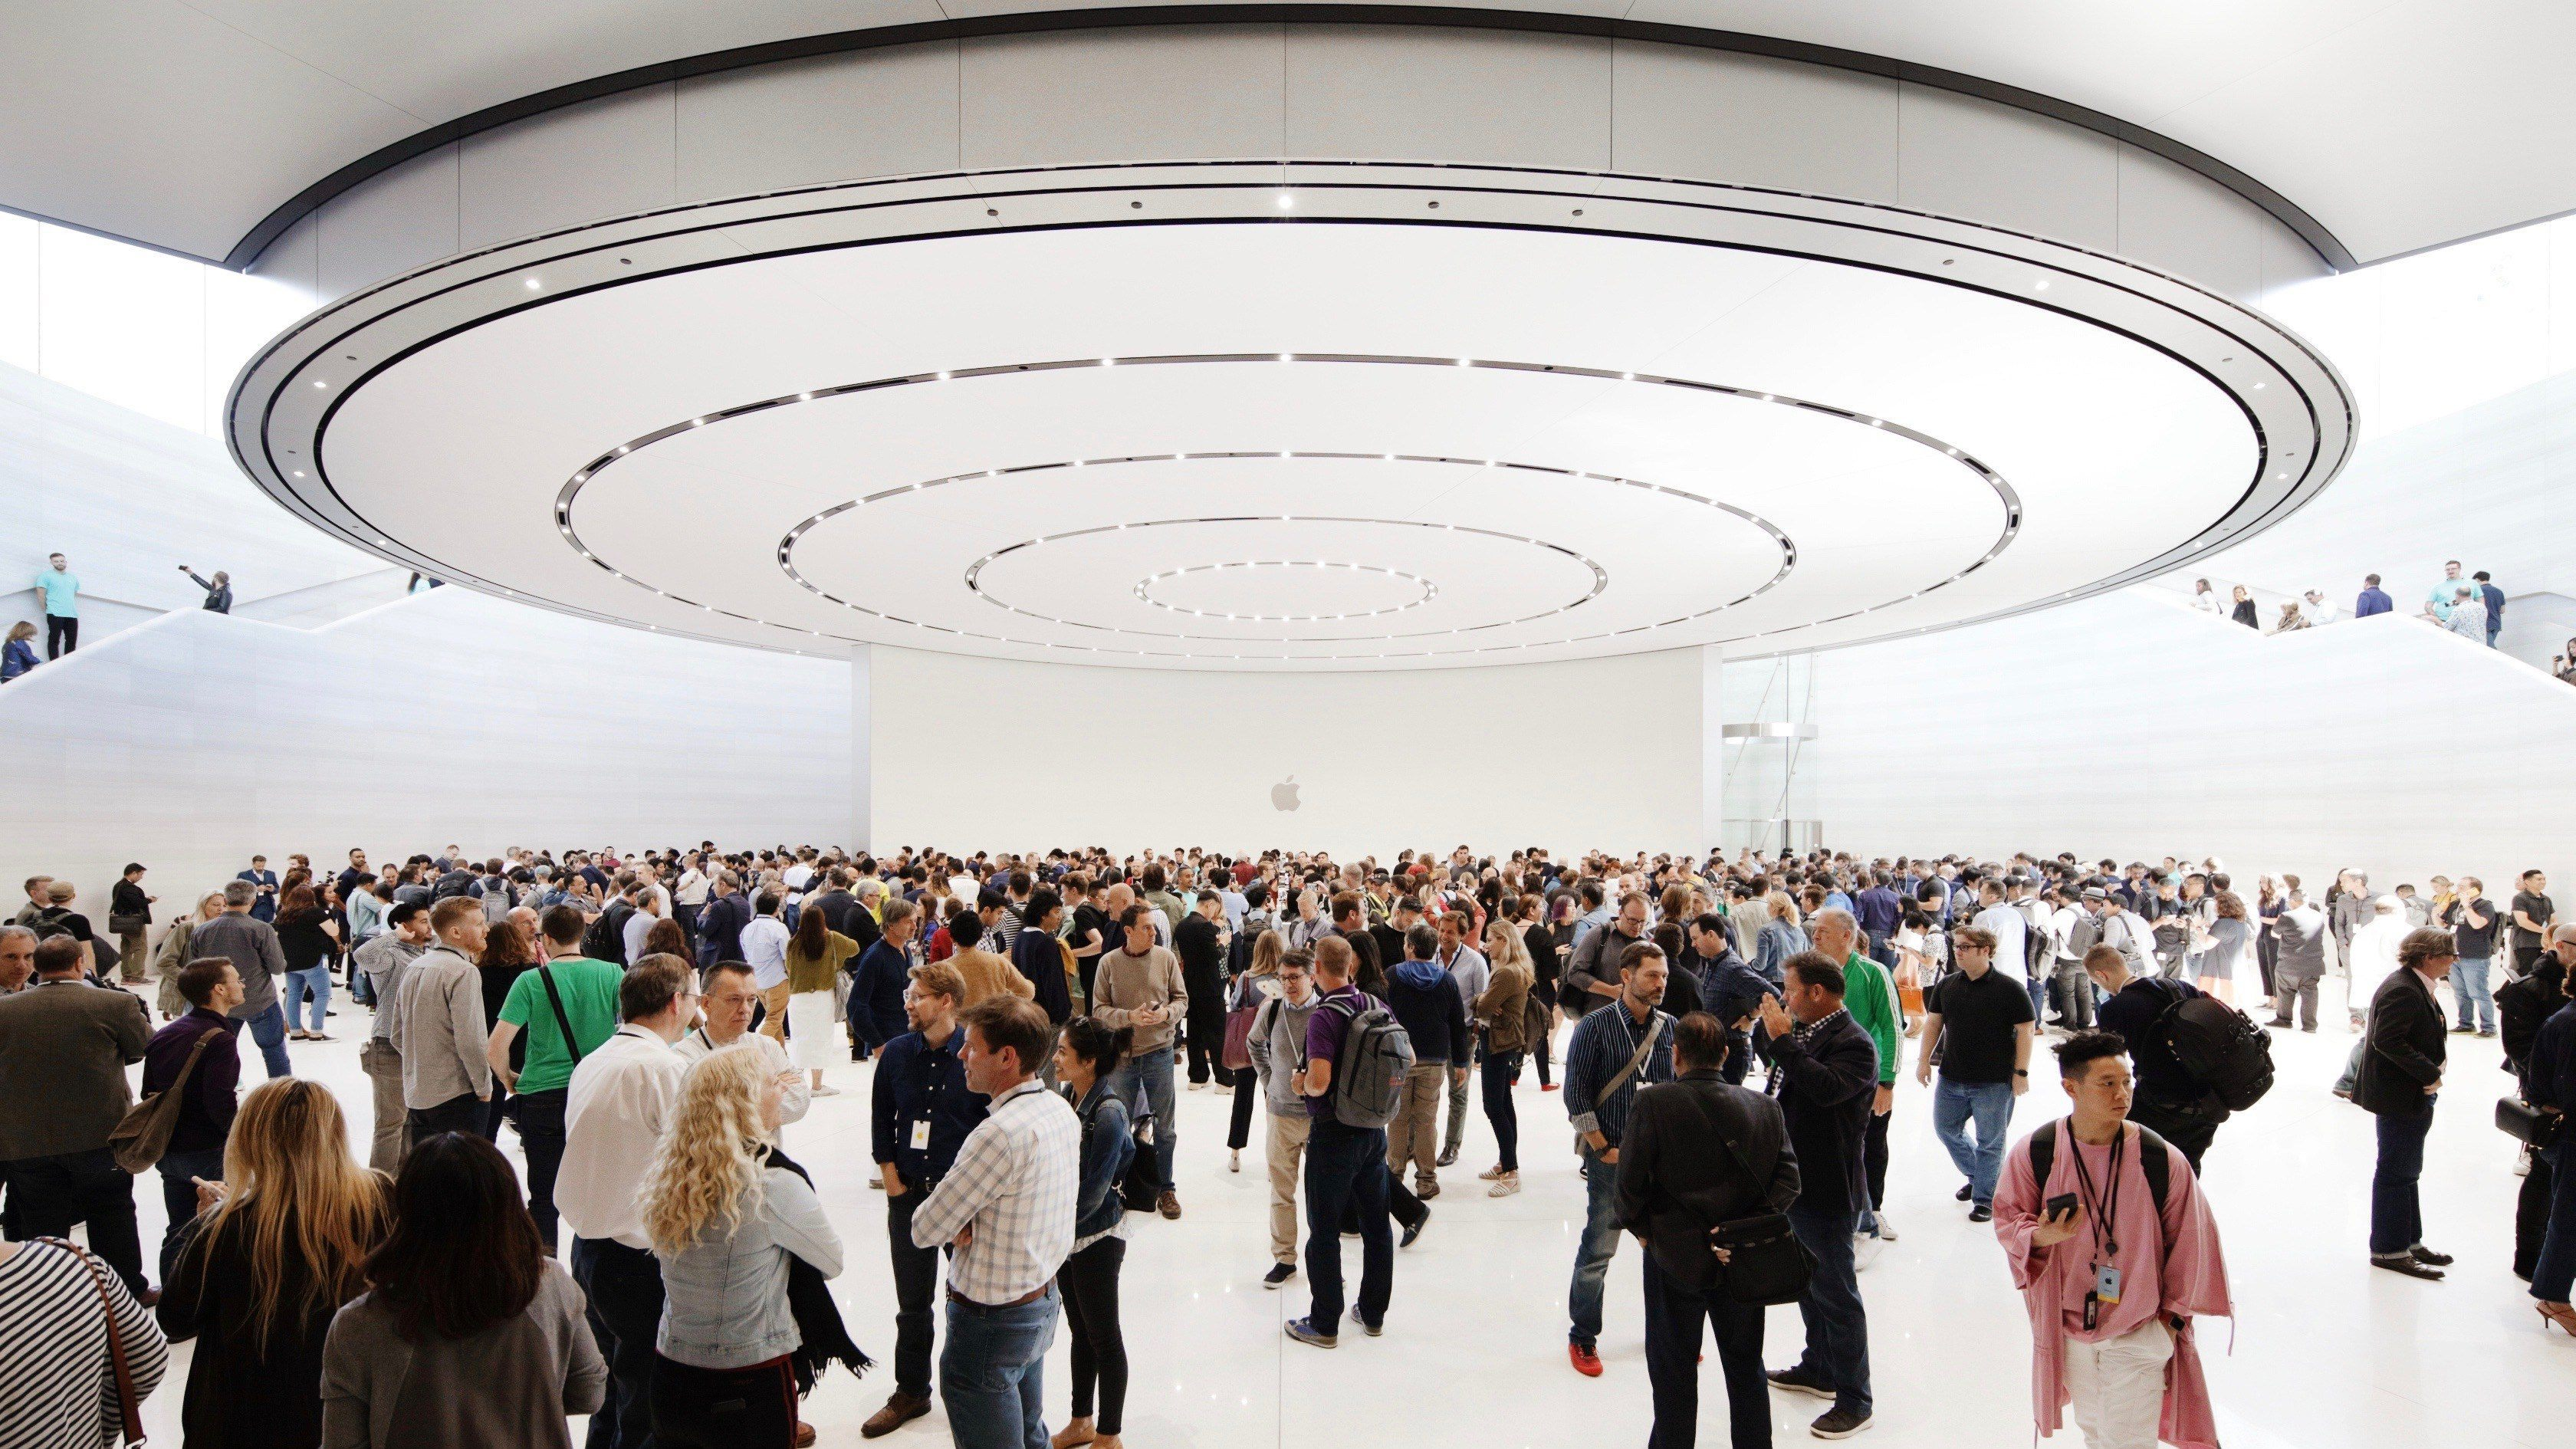 Apple_Keynote-Event_Guests-Steve-Jobs-Theater_091019